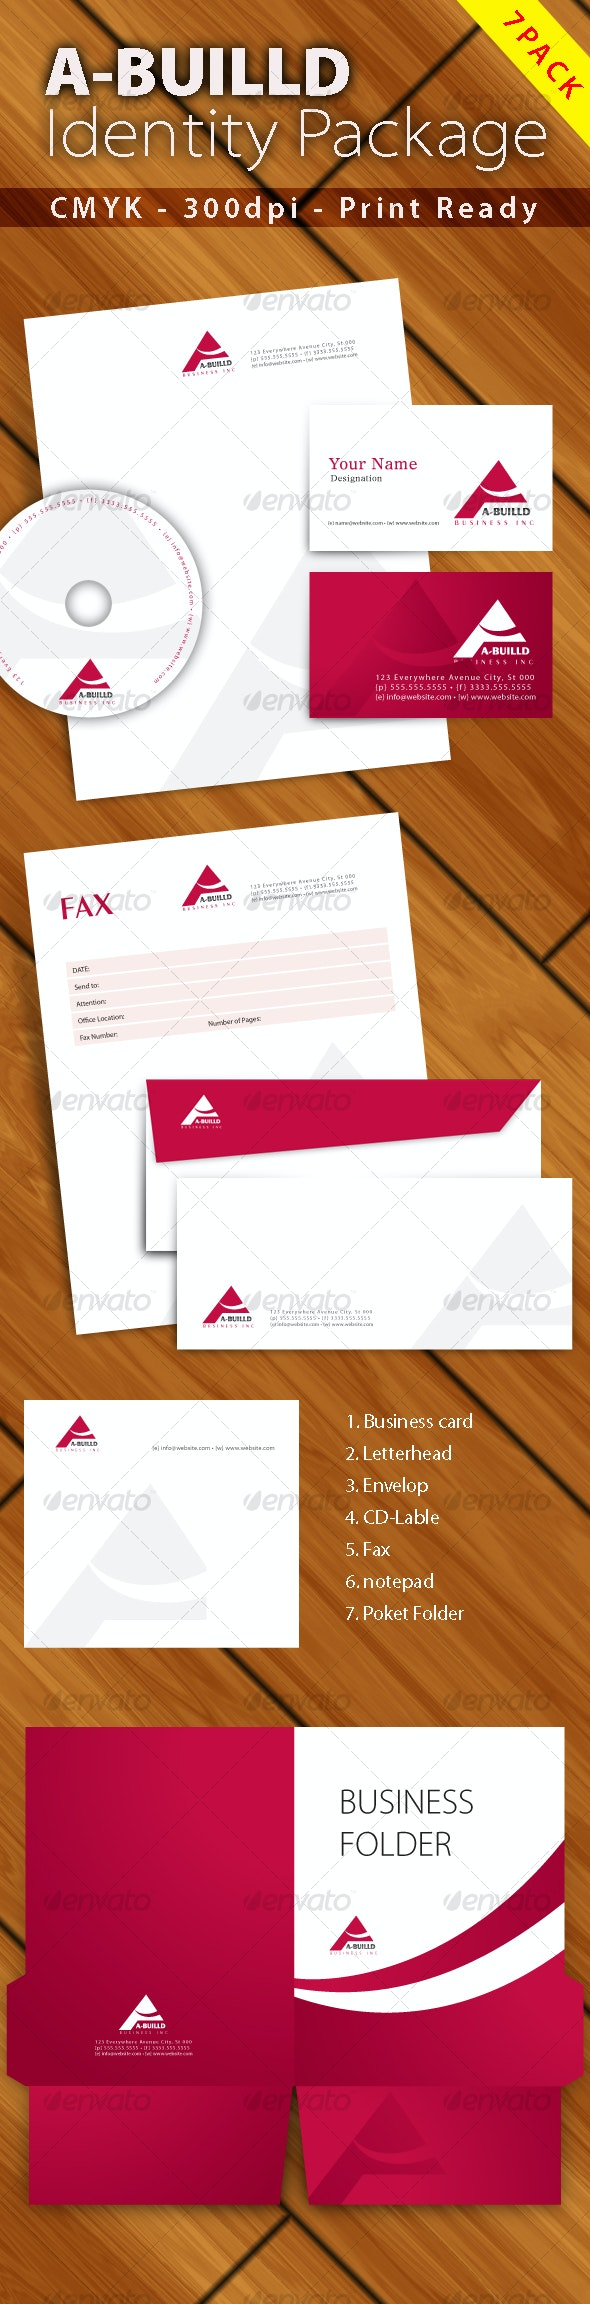 Corporate identity 7set [ Print Ready ] - Stationery Print Templates